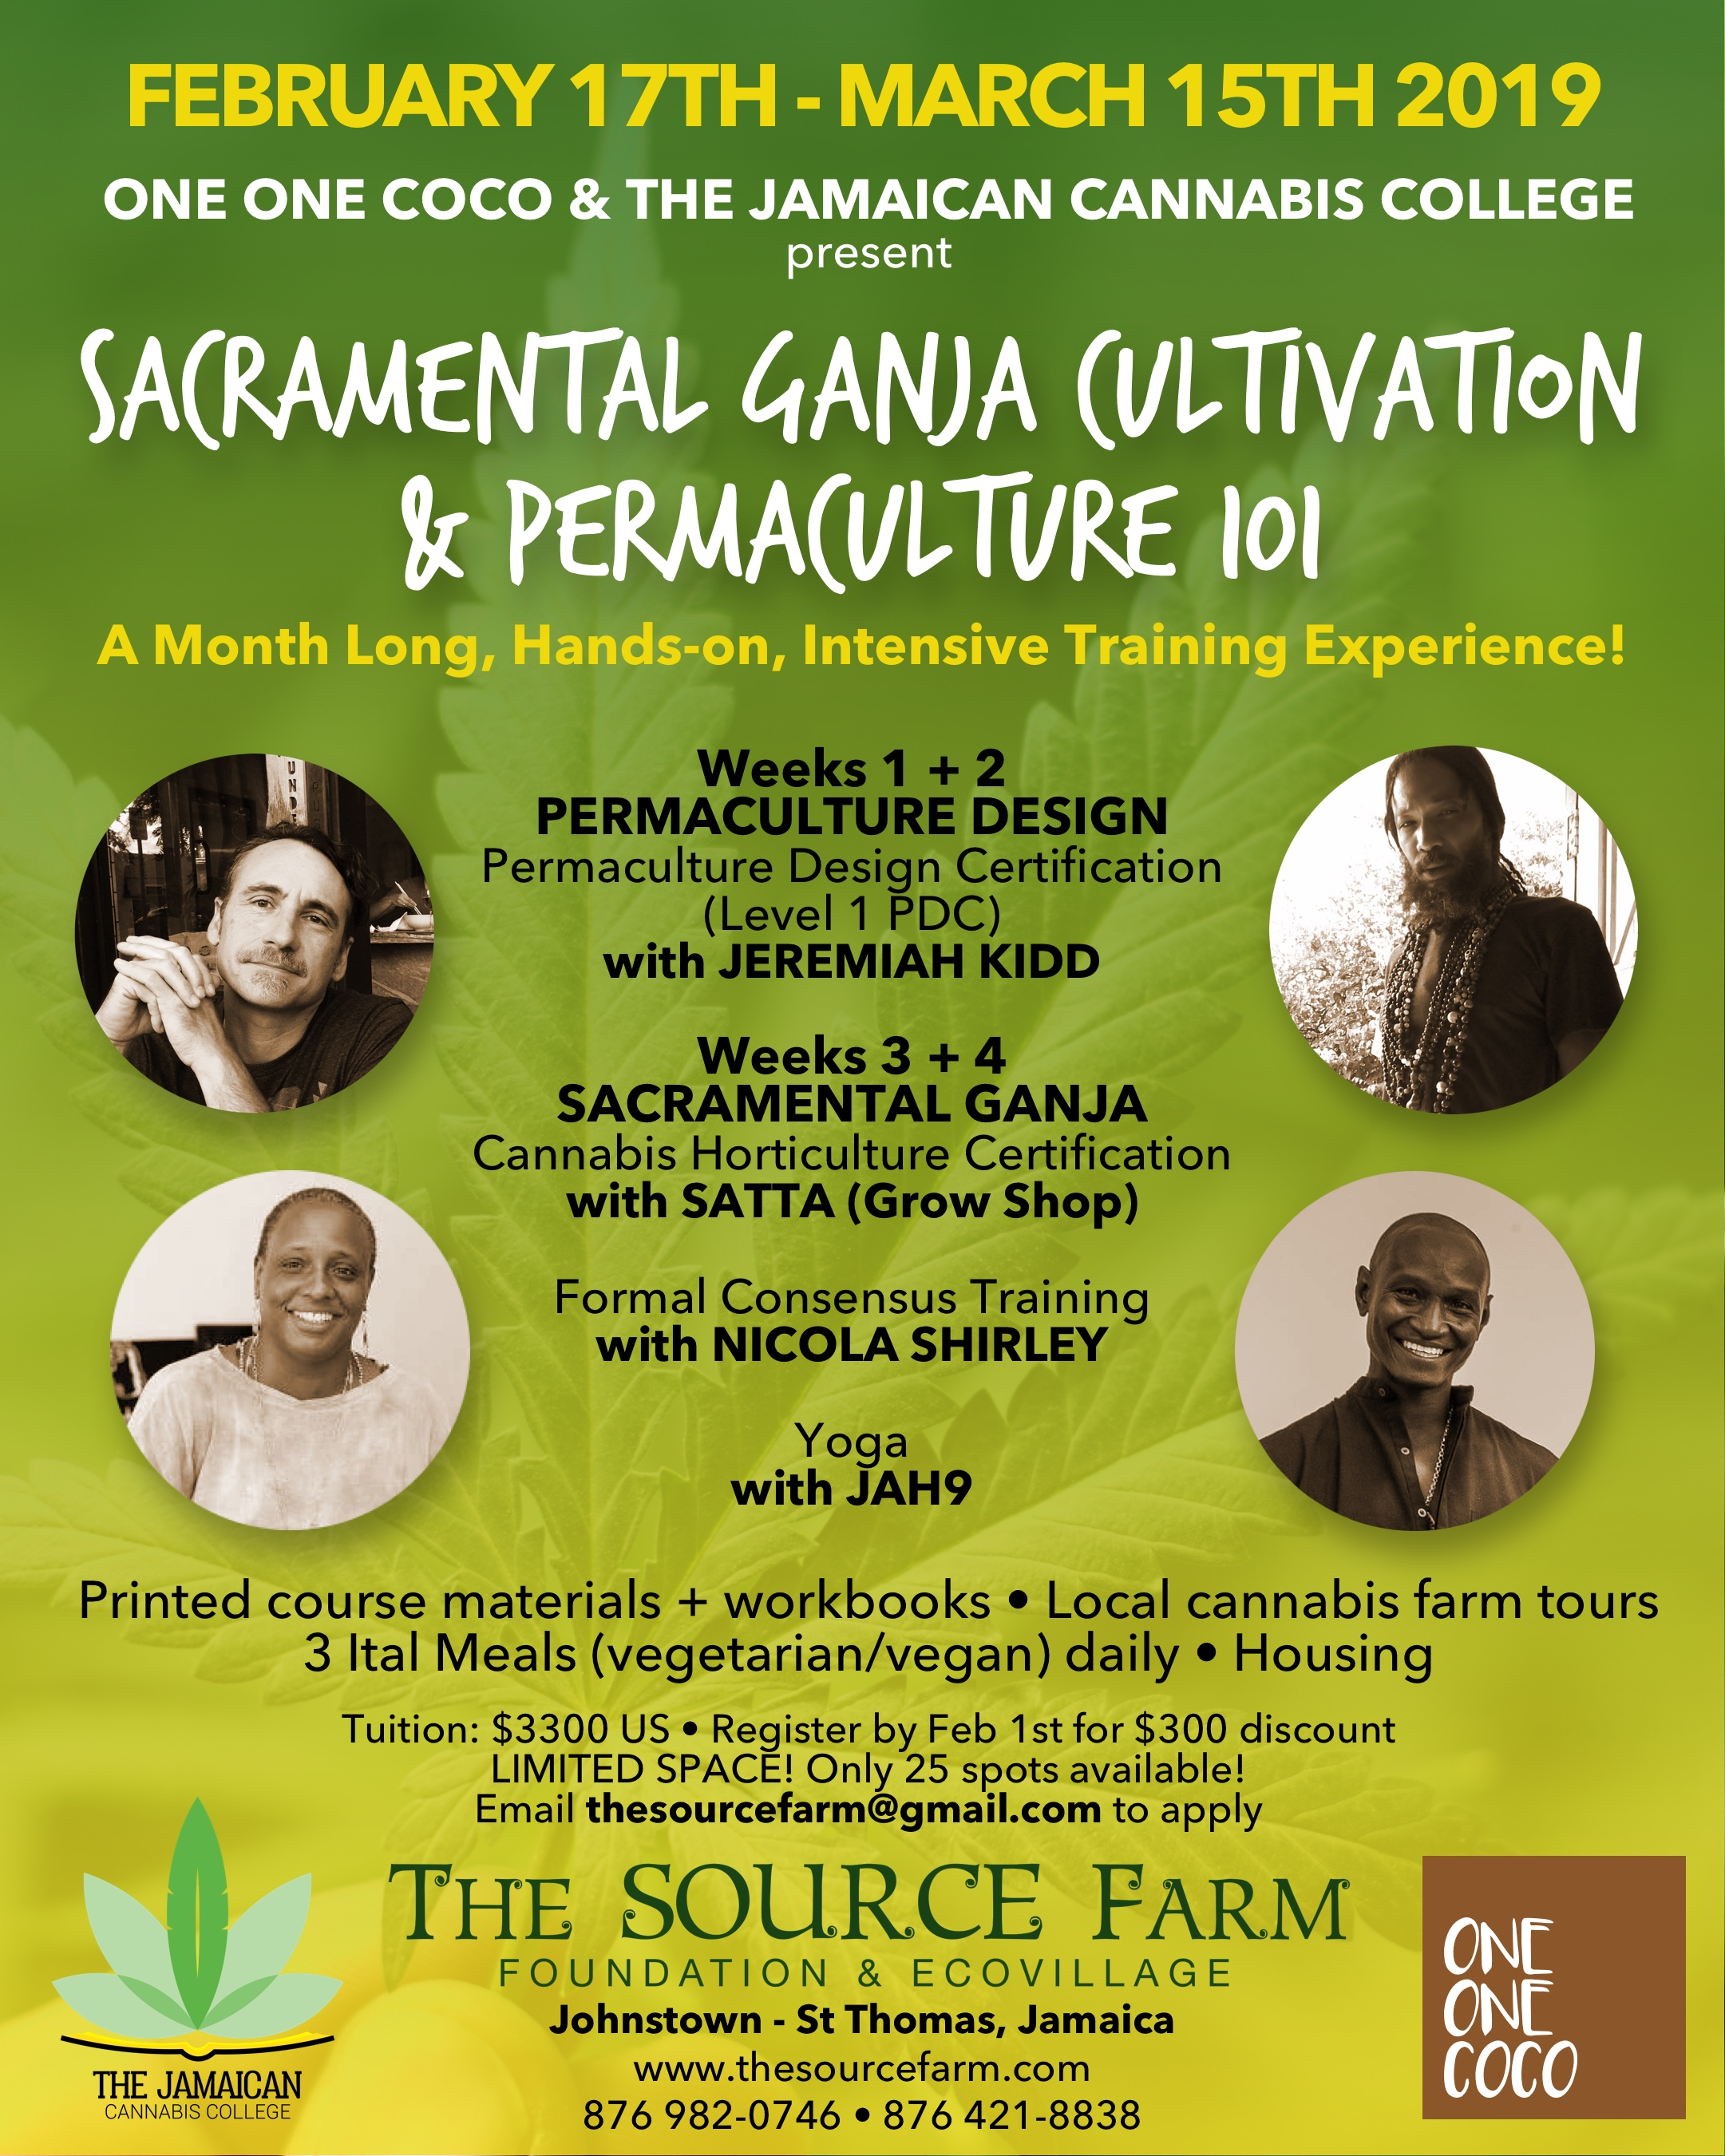 sacramental-ganja-cultivation-permaculture-101-v6.jpg